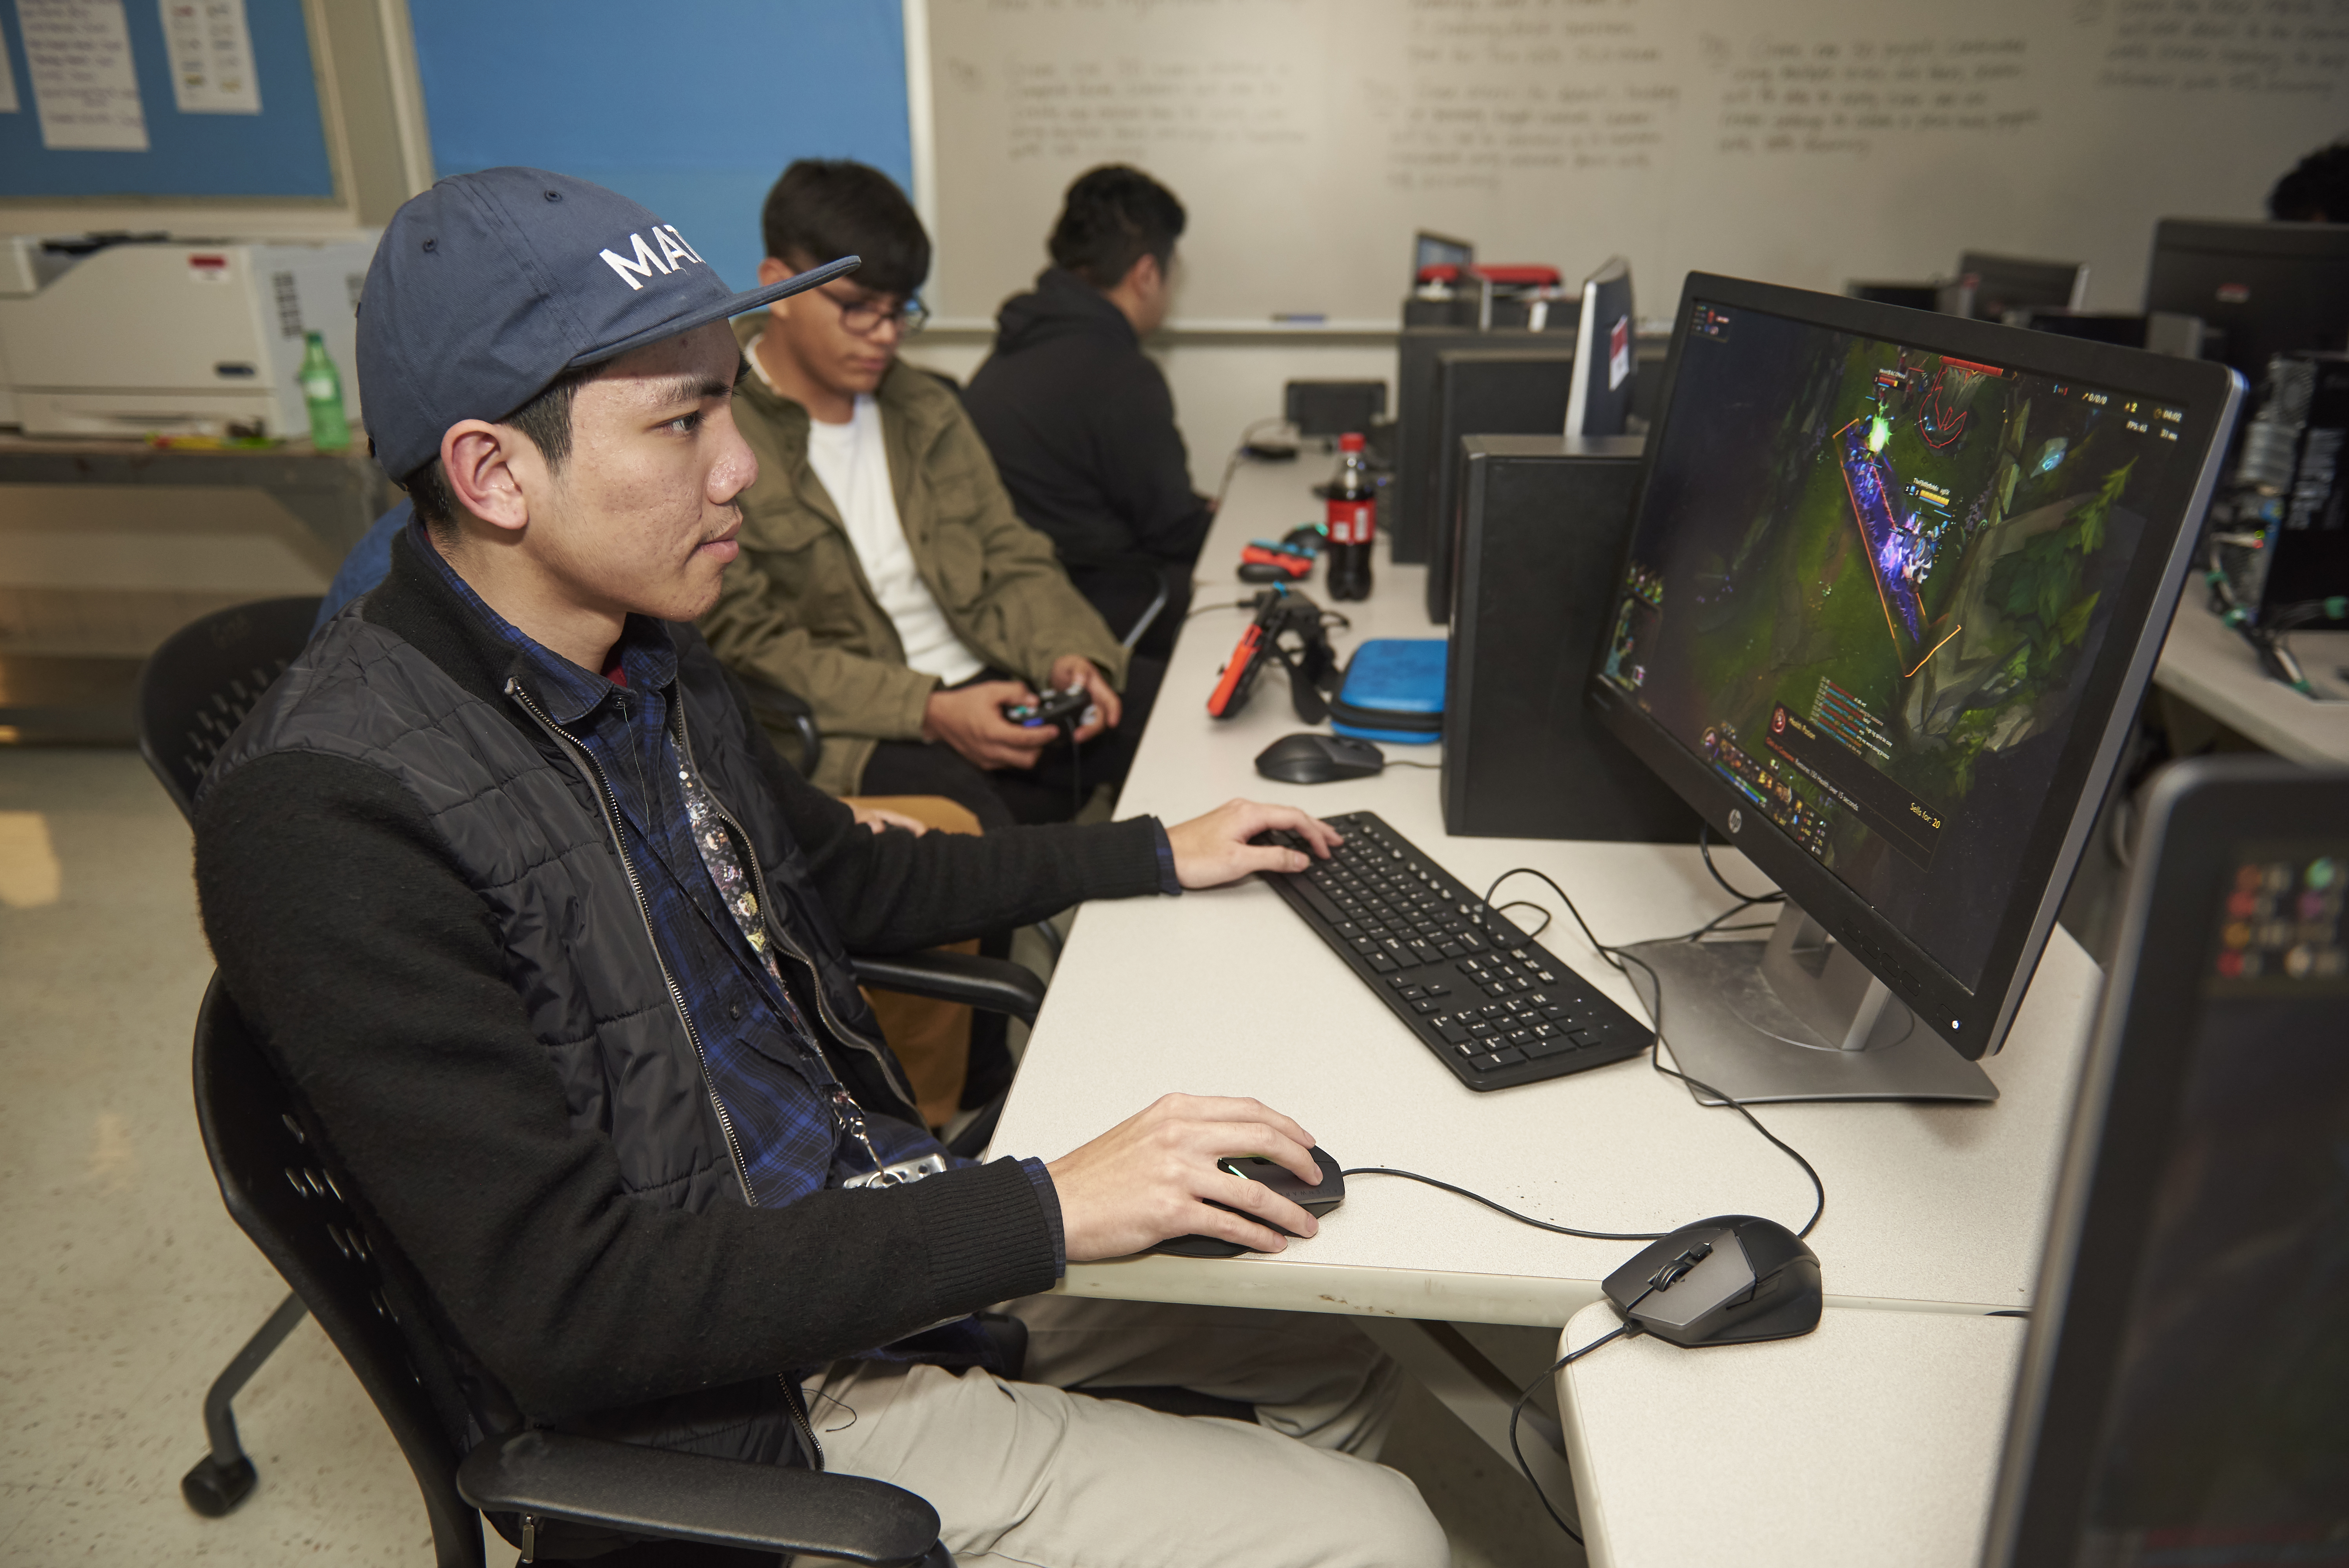 Another Skyline High School student plays esports. Dallas ISD plans to organize tournaments for its school to compete against one another.